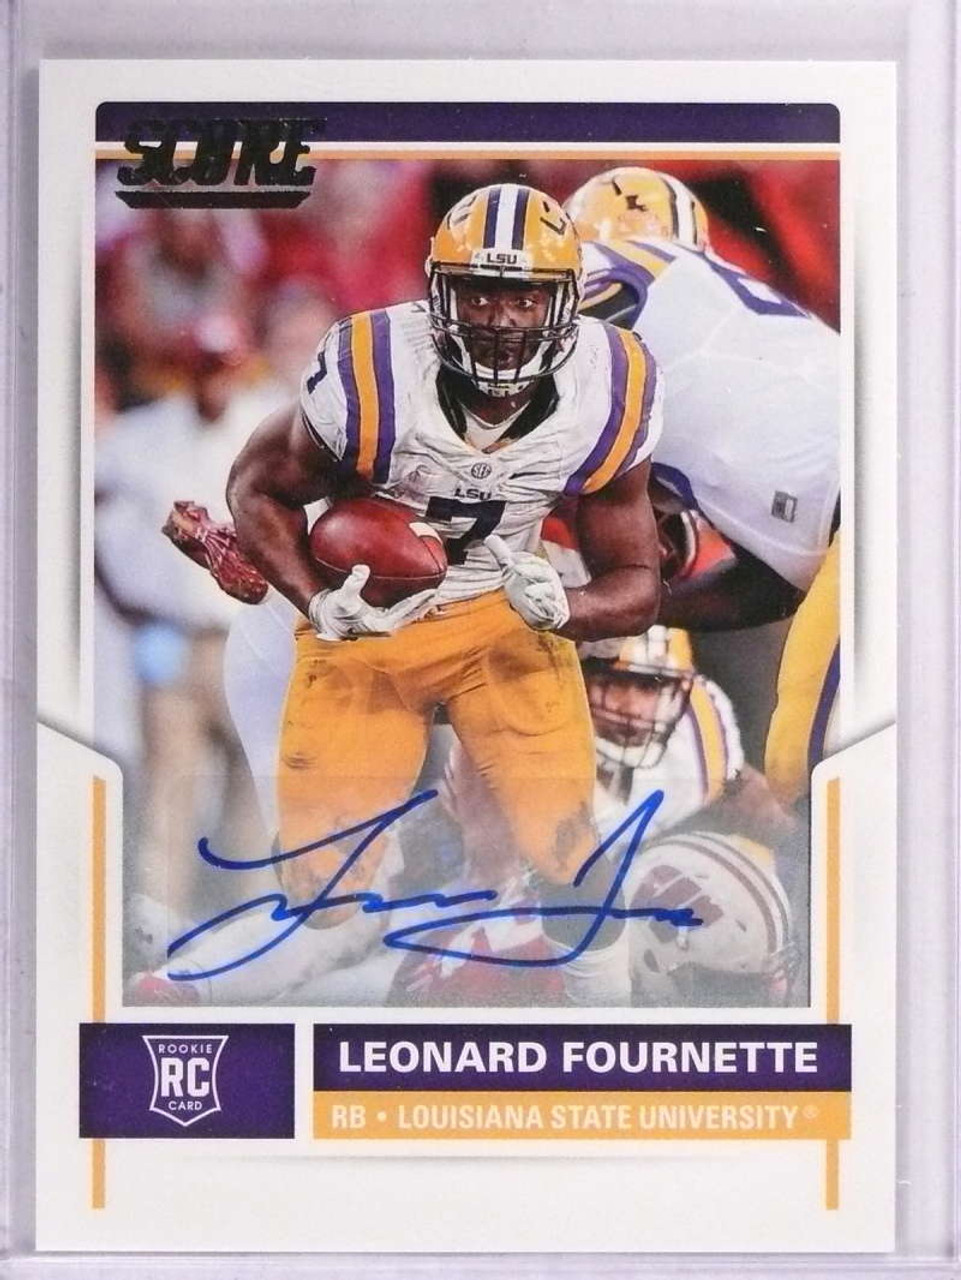 2017 panini score Rookie Leonard Fournette, football card!!!